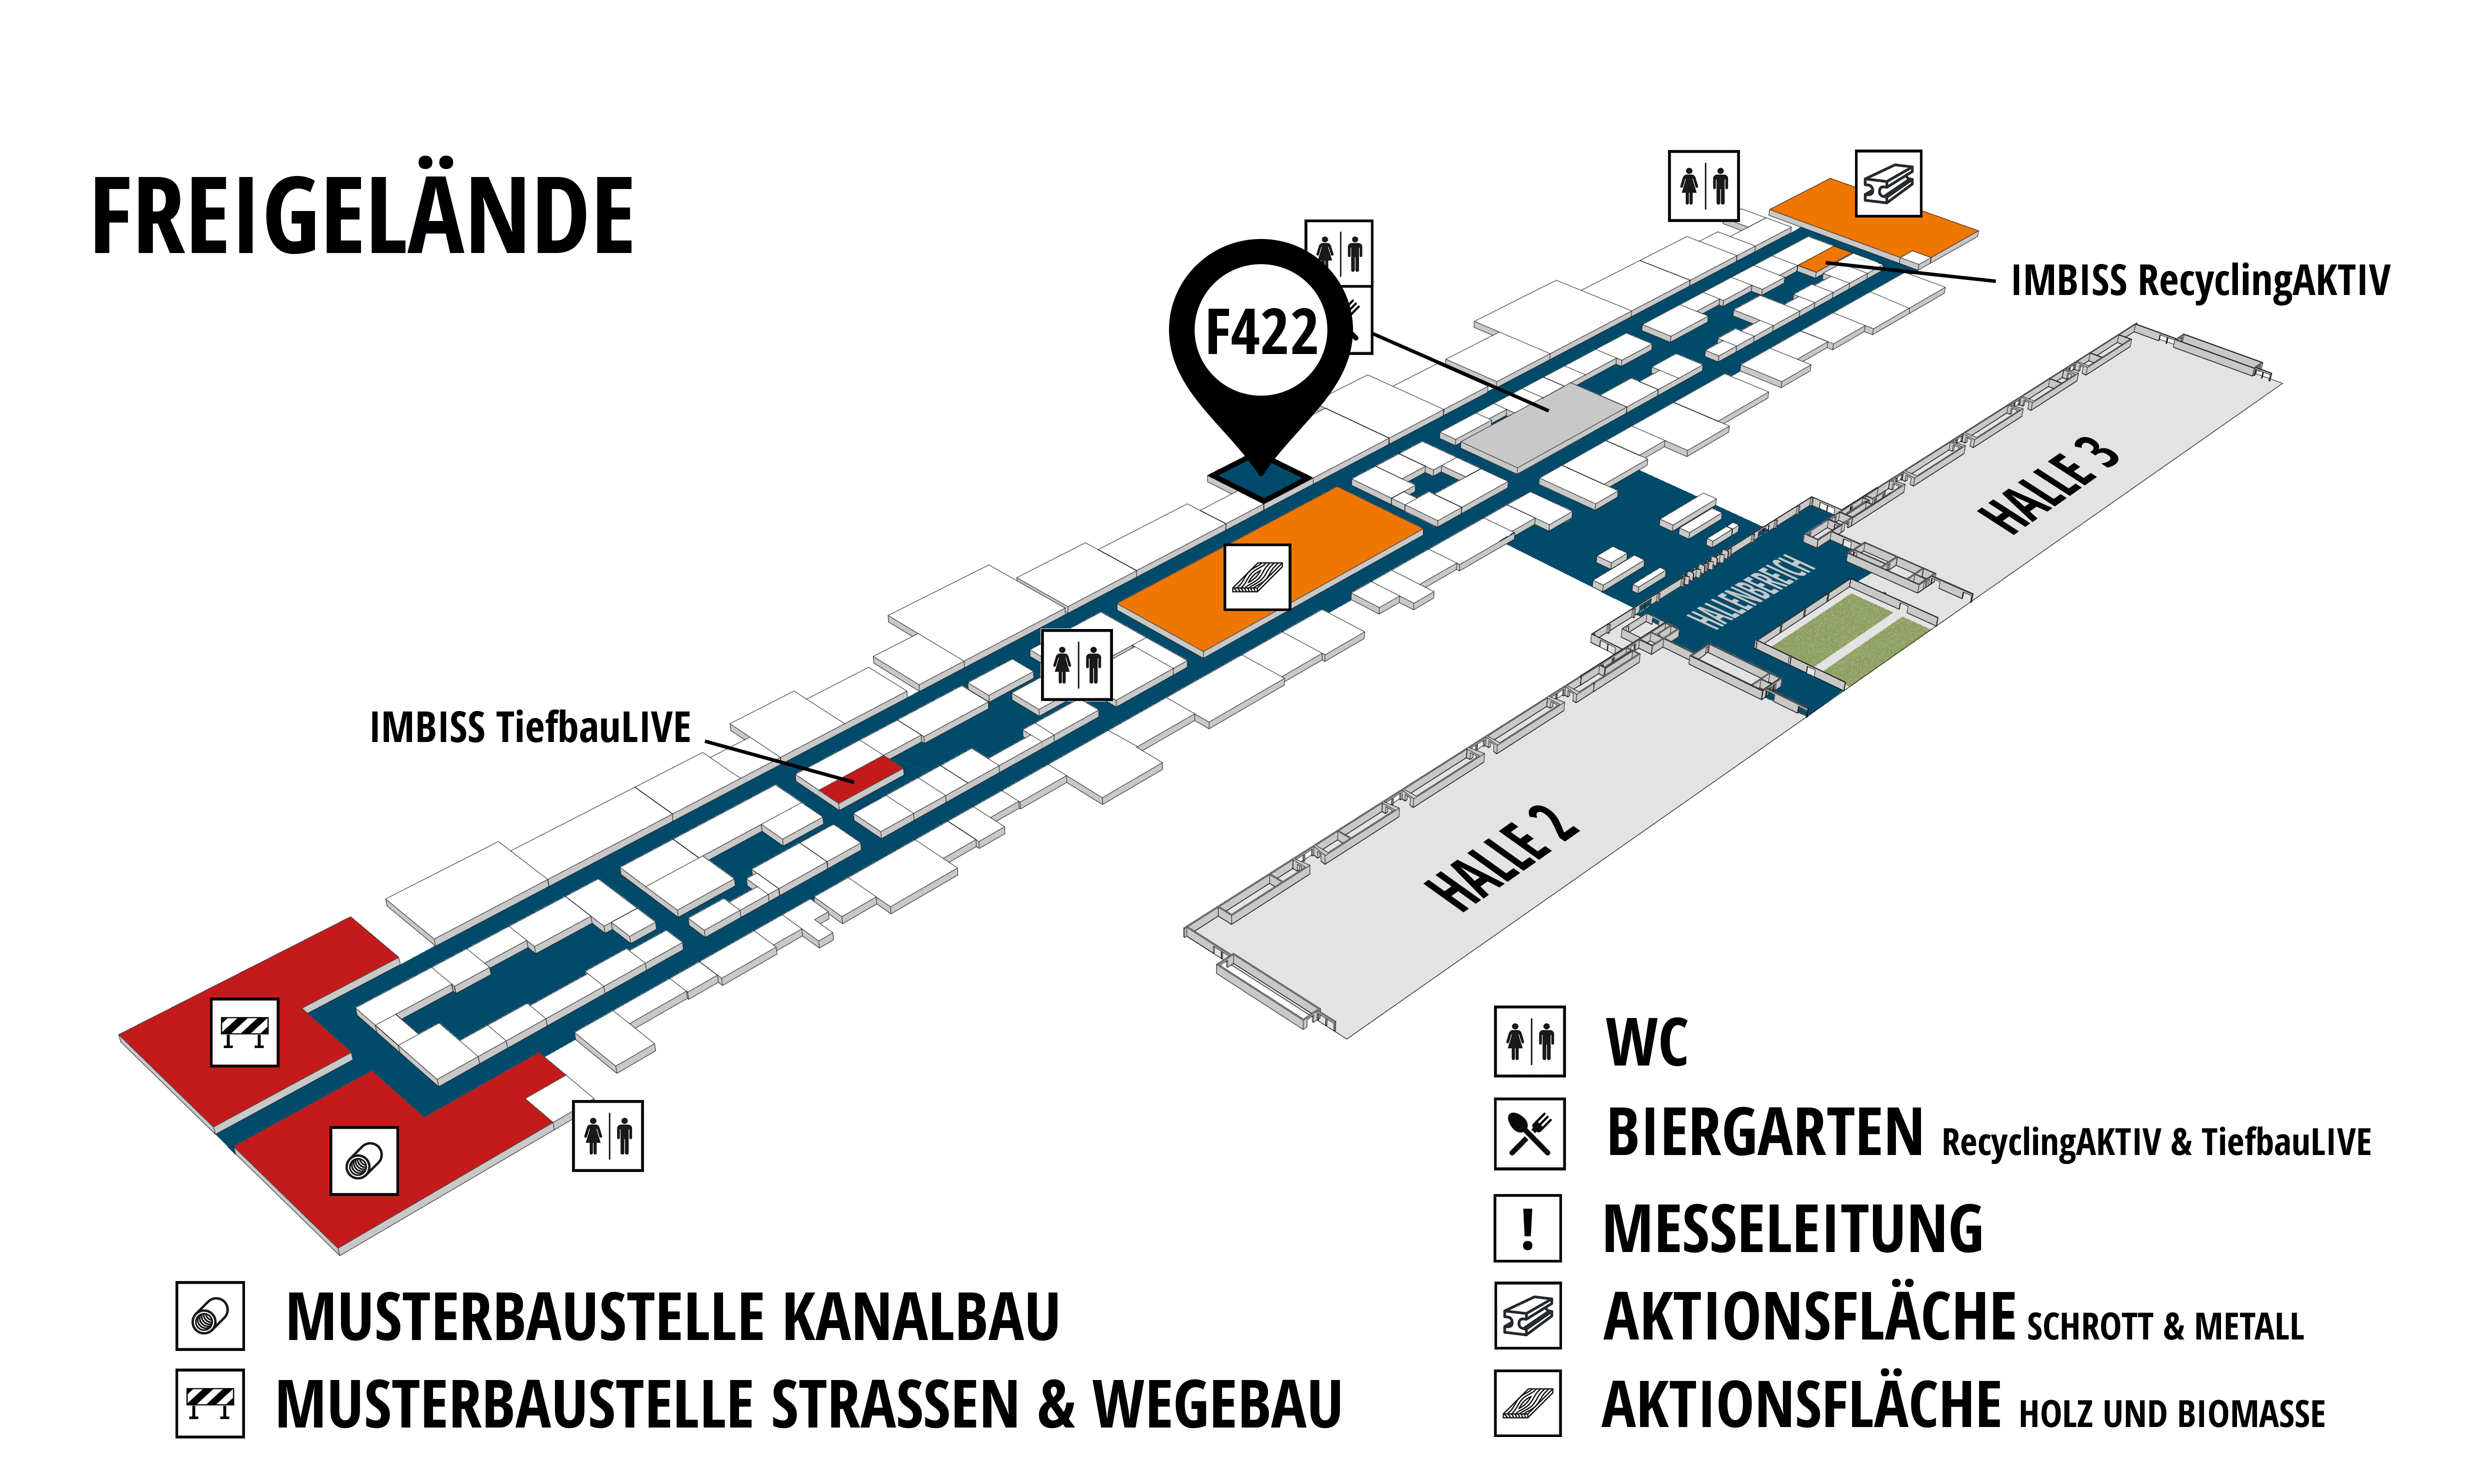 RecyclingAKTIV & TiefbauLIVE 2019. The Demonstration Trade Fairs ||Demonstration trade fair for waste removal and recycling. Demonstration trade fair for road construction and civil engineering. hall map (Outdoor area (east)): stand F422